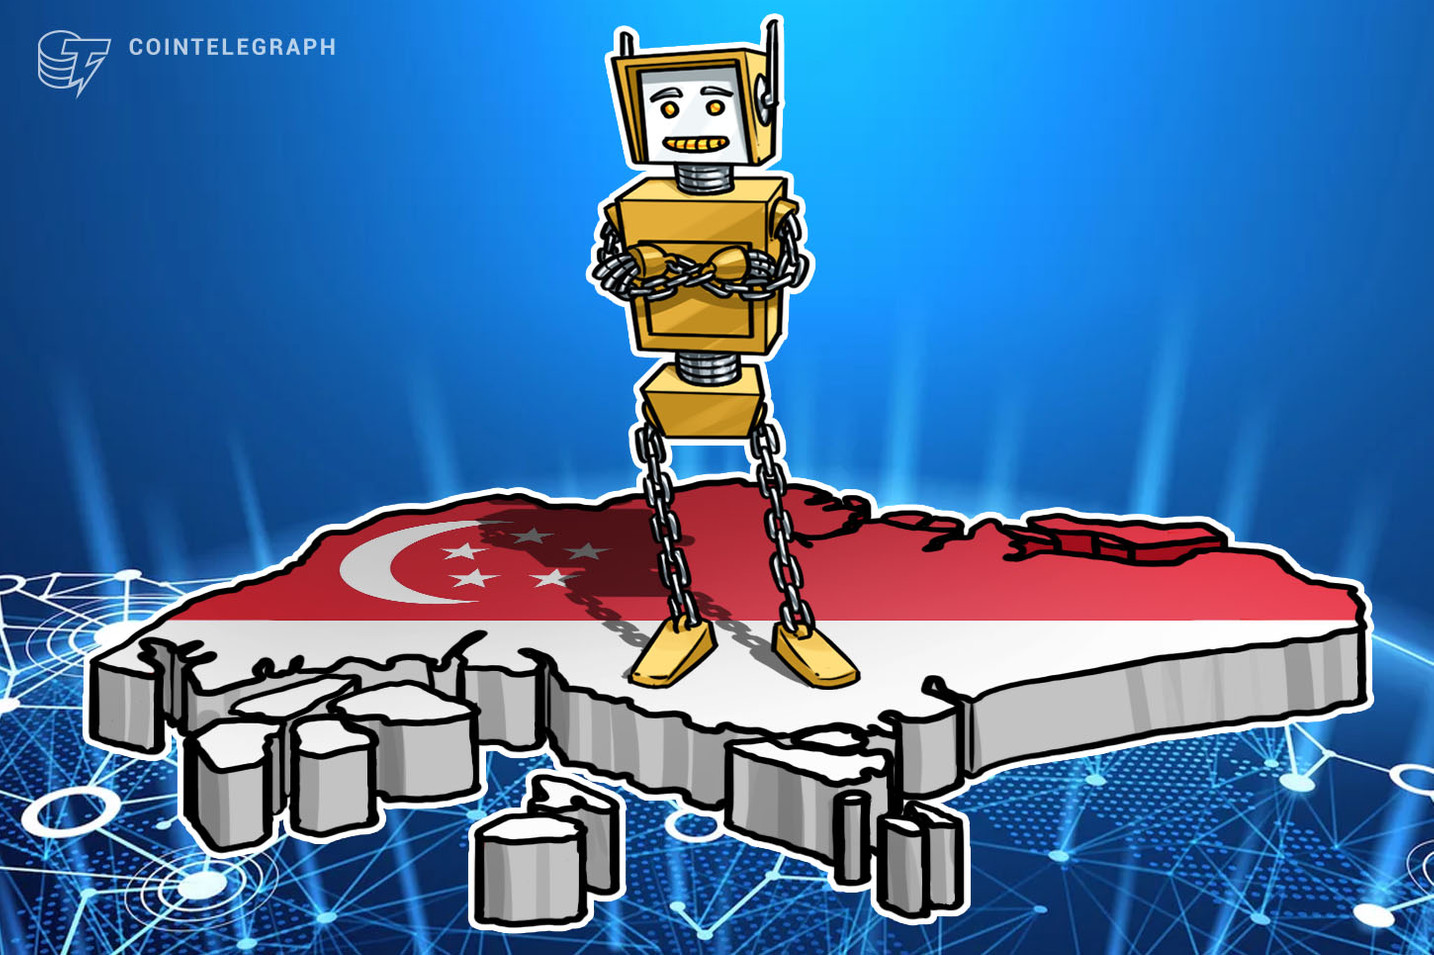 Singapore: Gov't Owned CrimsonLogic Launches Global Cross-Border Blockchain Platform